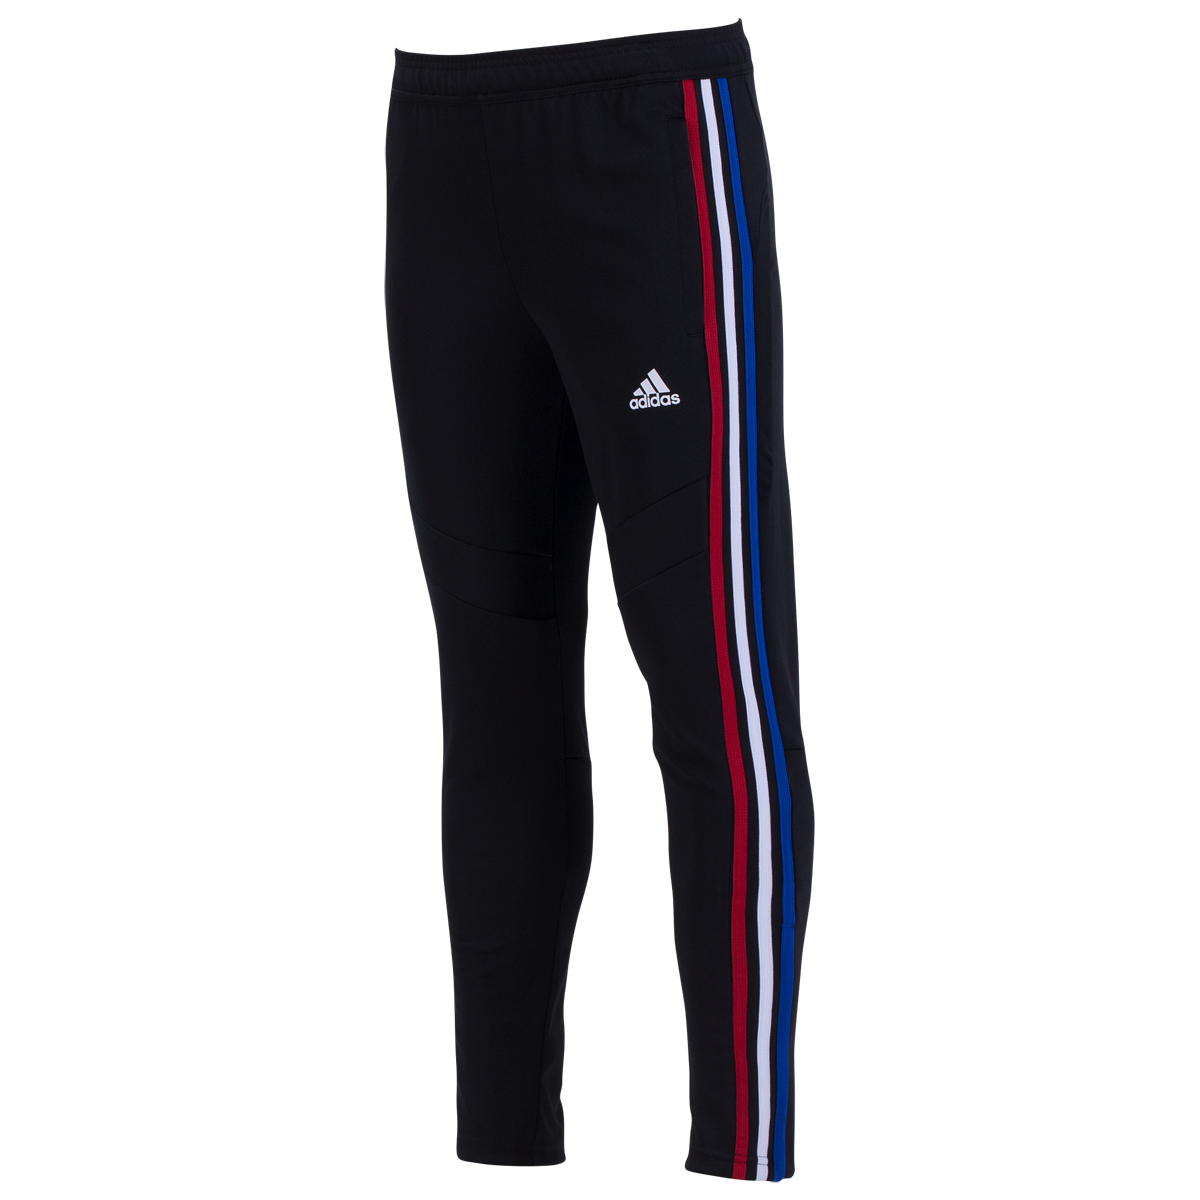 Adidas YOUTH Black//White Tiro 19 YOUTH Training Pants